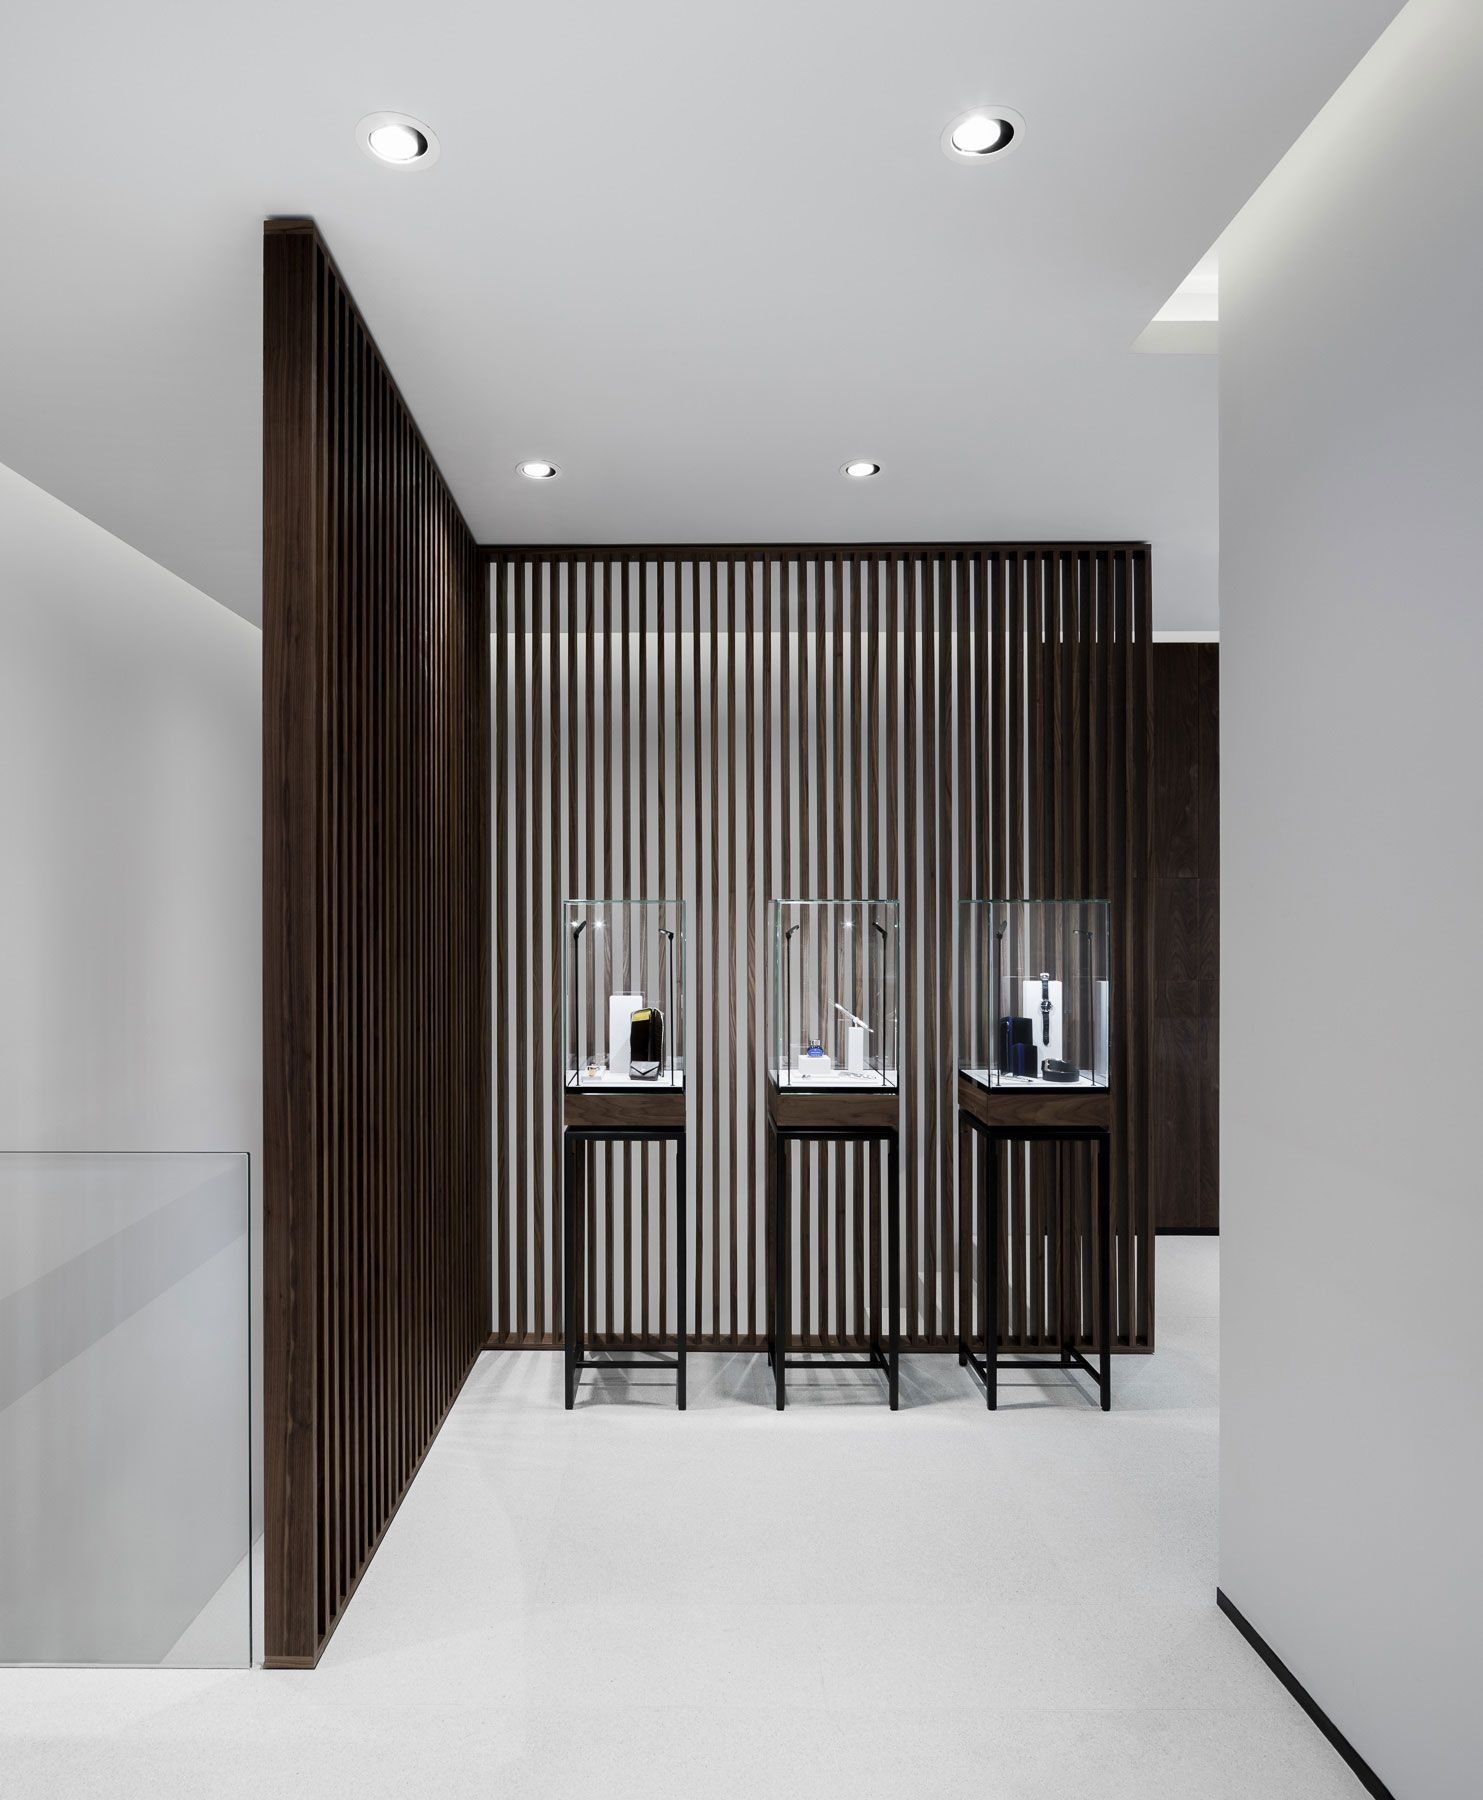 Georg jensen 39 s london boutique by studio david thulstrup studio store and retail Interior design stores london